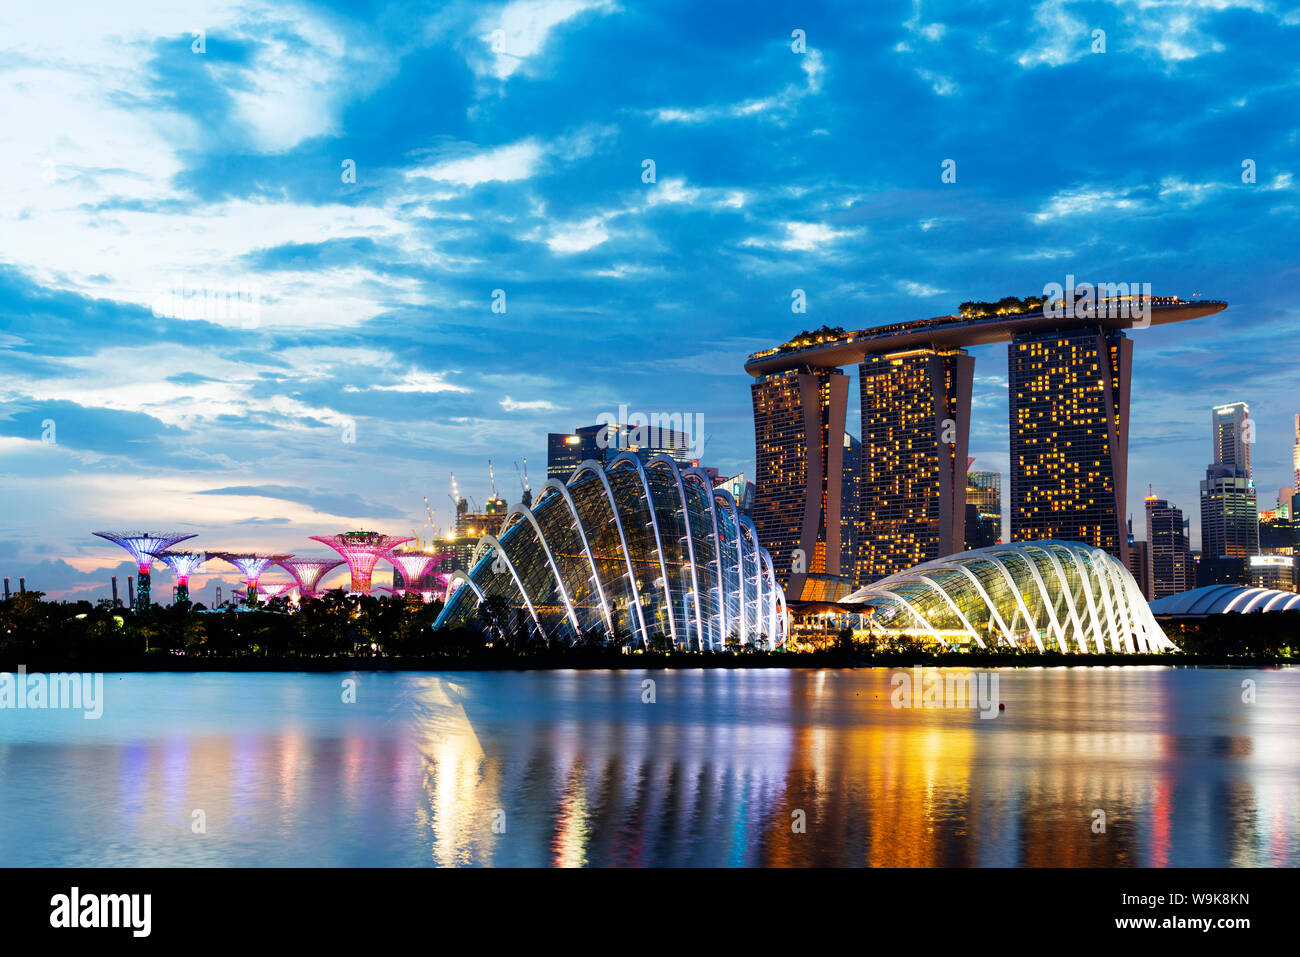 Gardens by the Bay, Cloud Forest, Flower Dome, Marina Bay Sands Hotel and Casino, Supertree Grove, Singapore, Southeast Asia, Asia Stock Photo